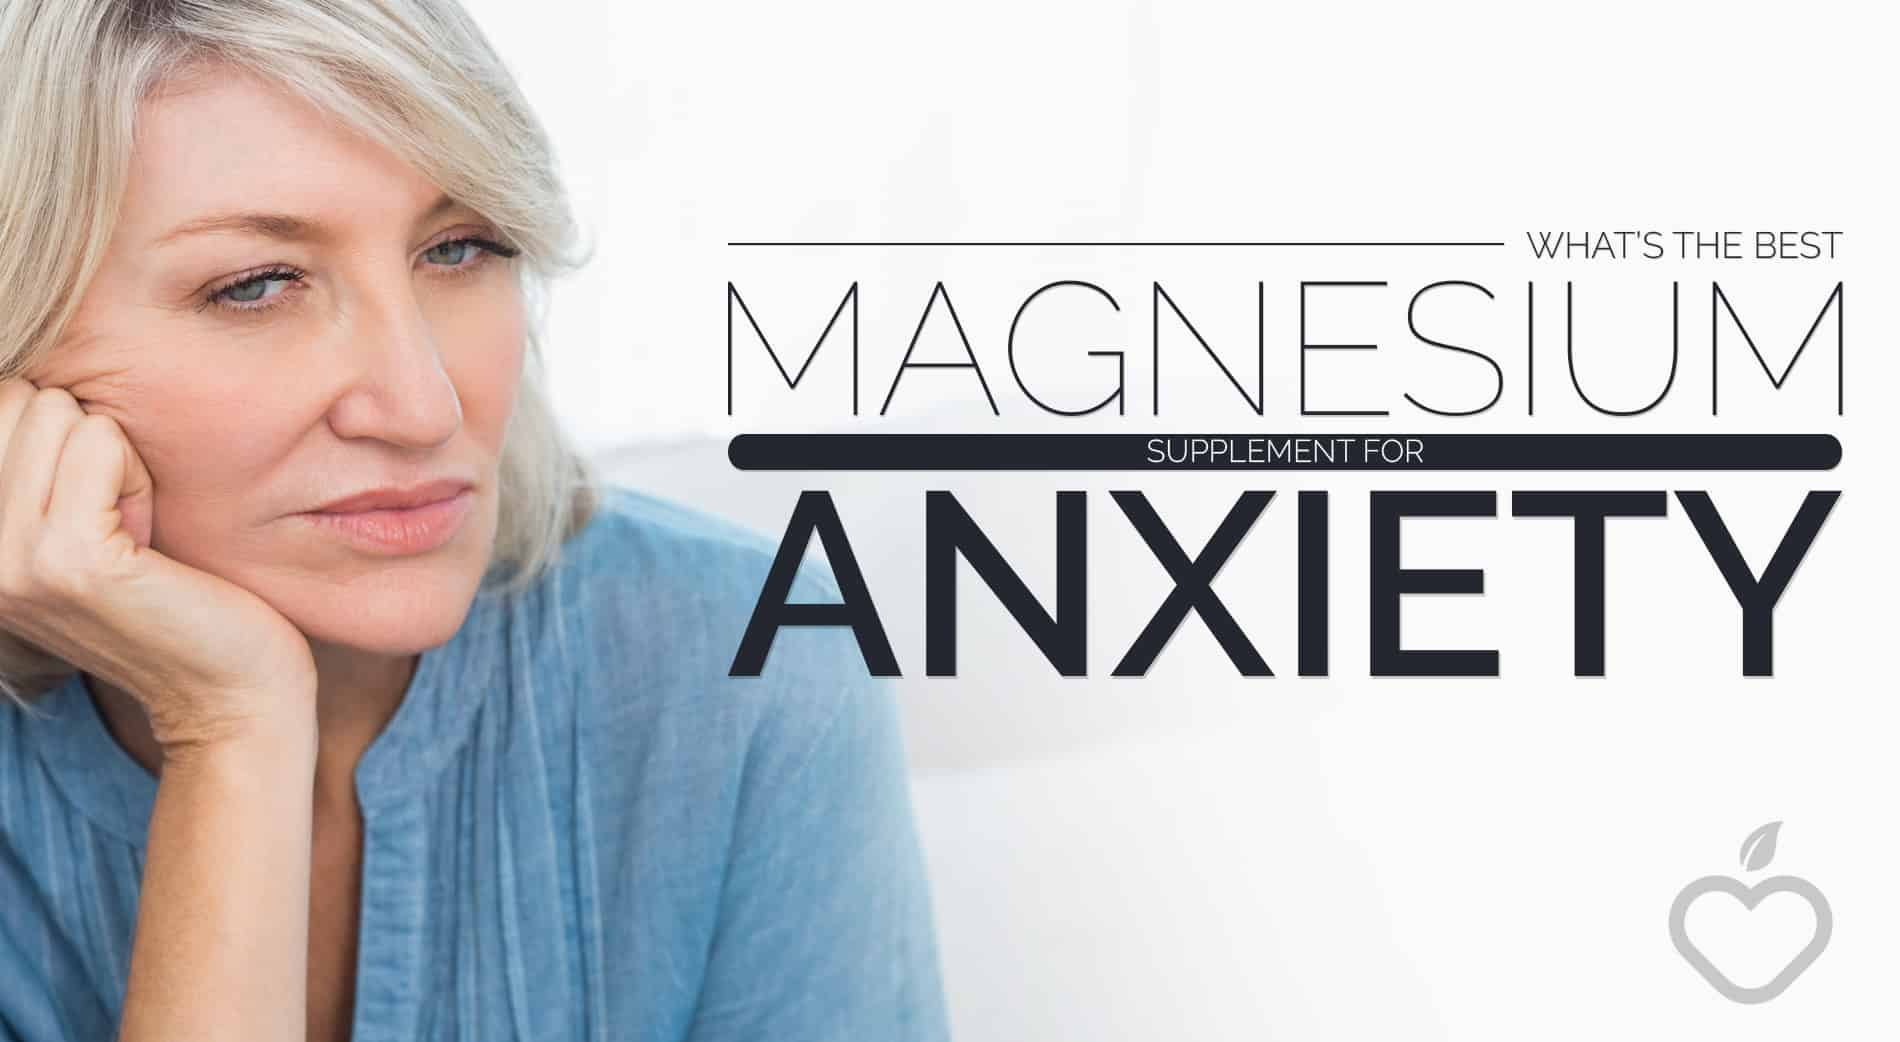 What's The Best Magnesium Supplement For Anxiety - 60 is the